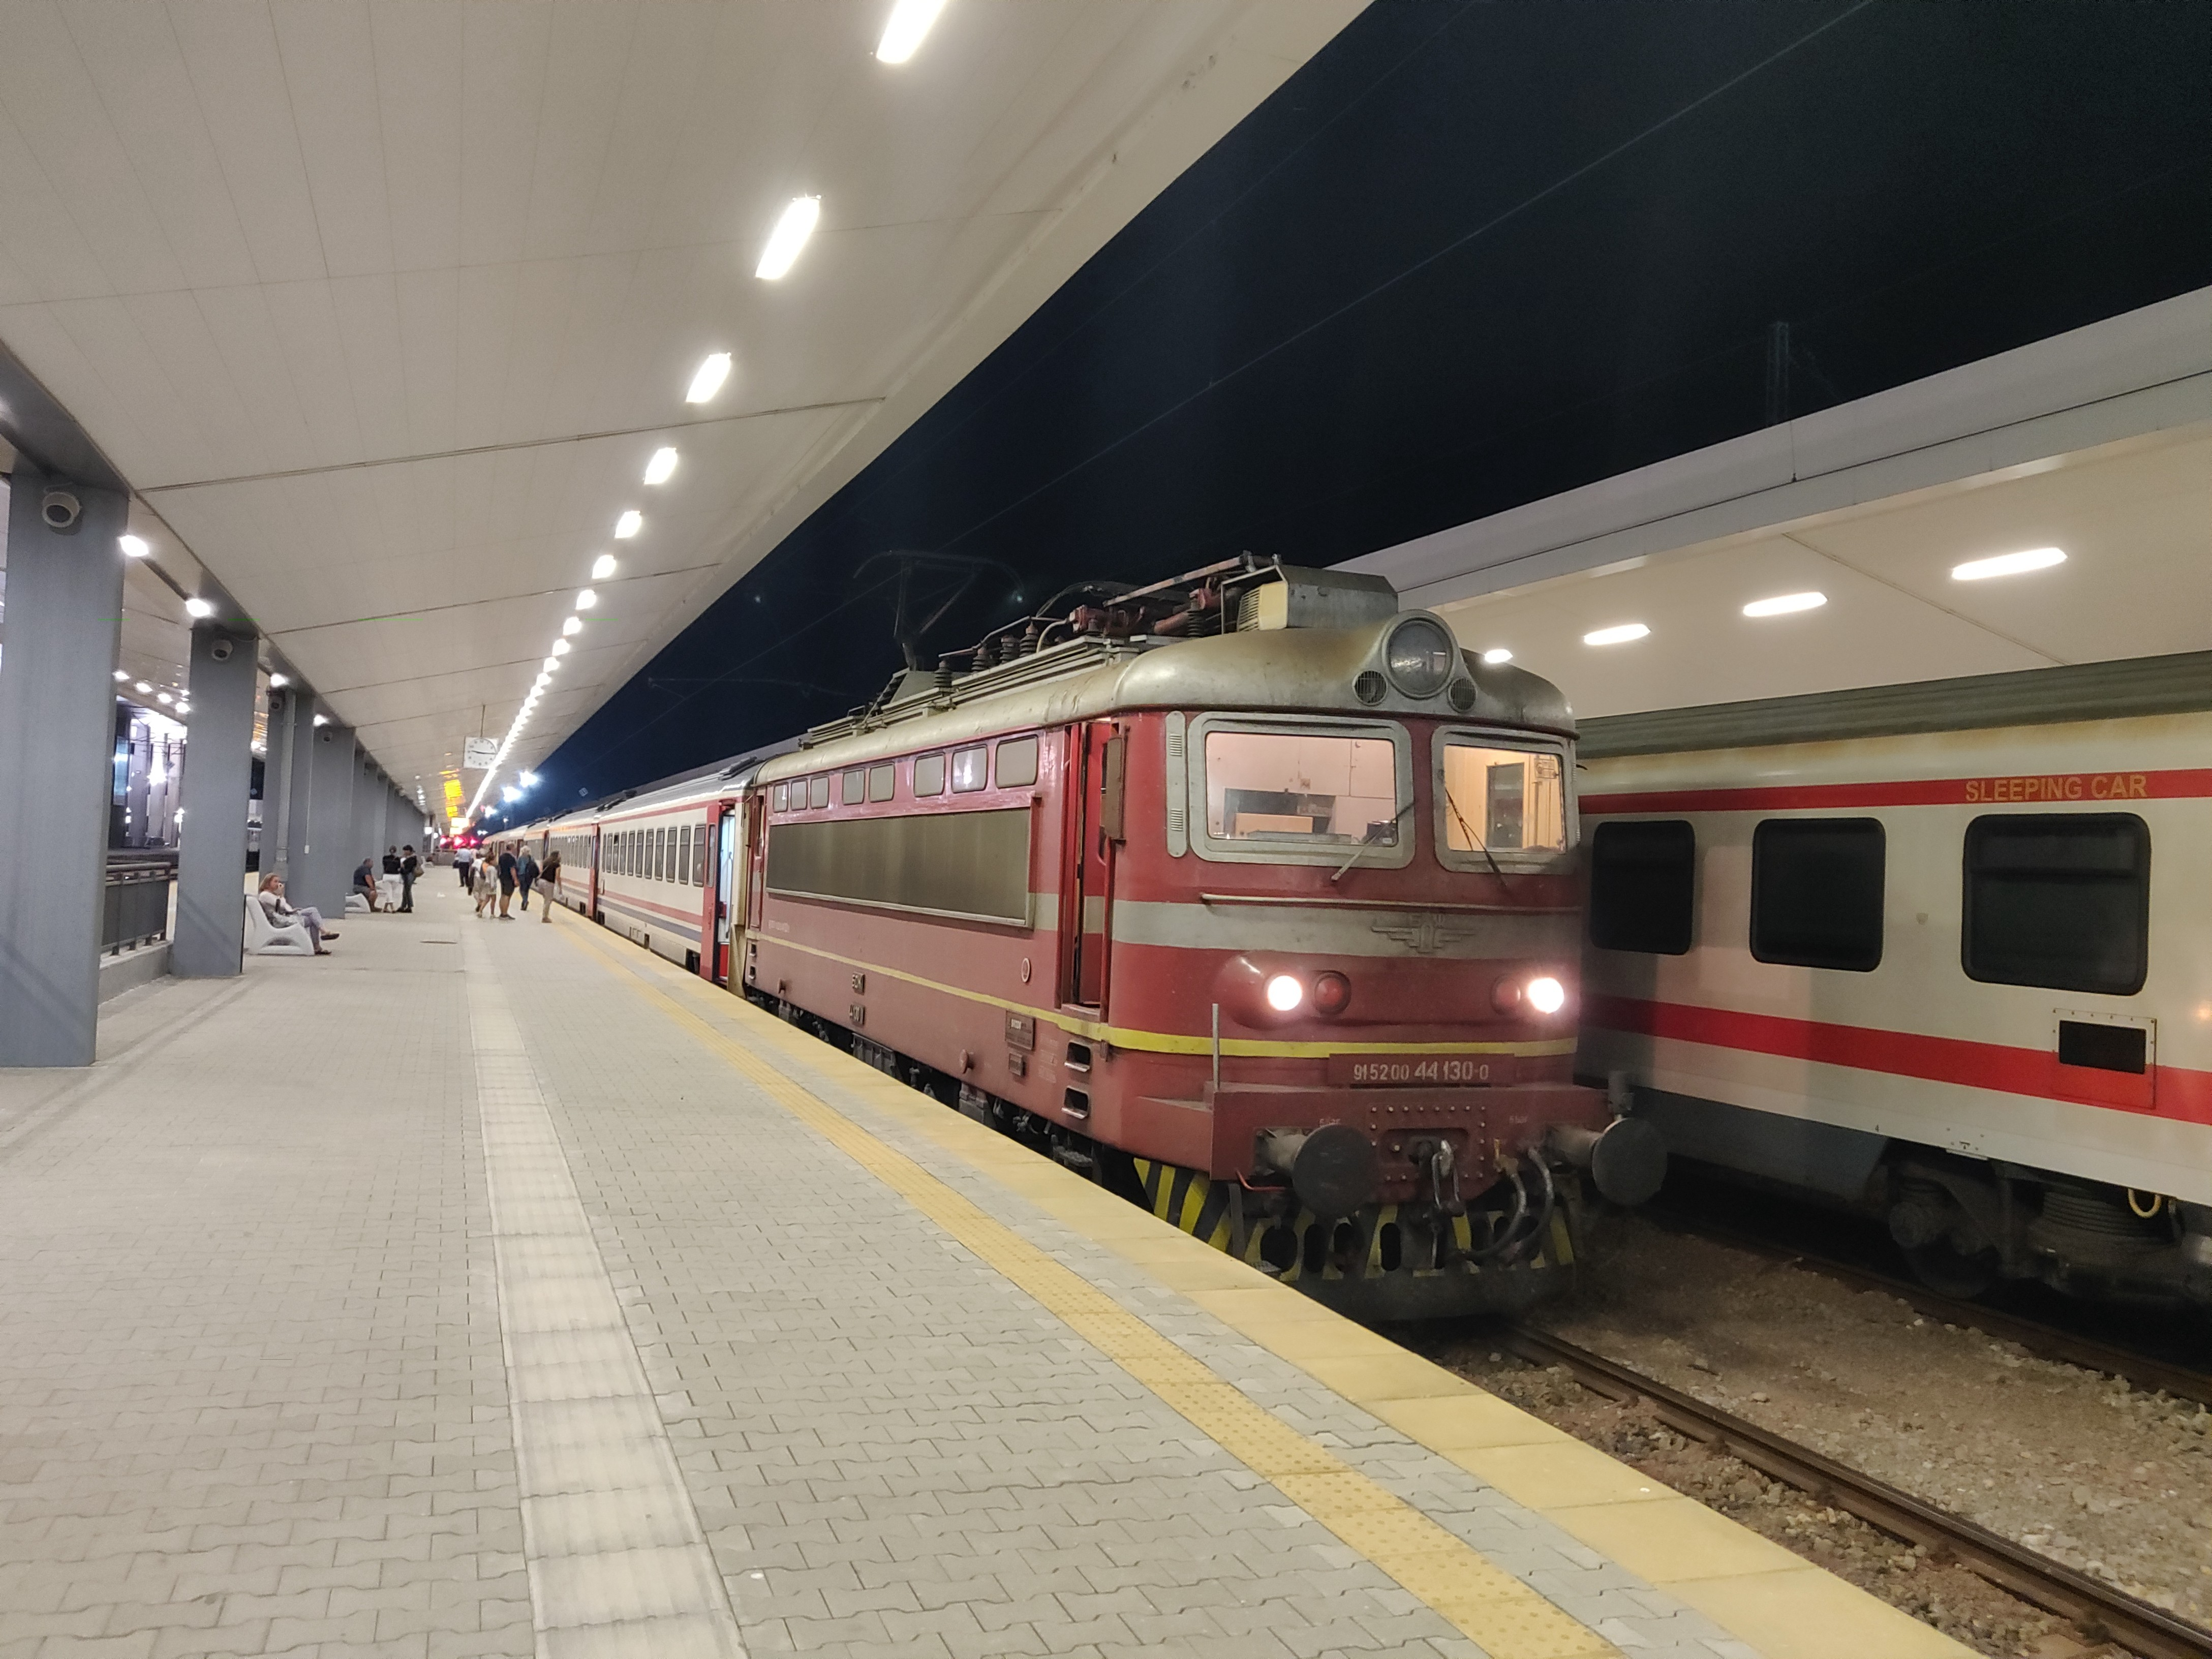 Istanbul-Sofia Express Train Temporarily Suspended Over Coronavirus